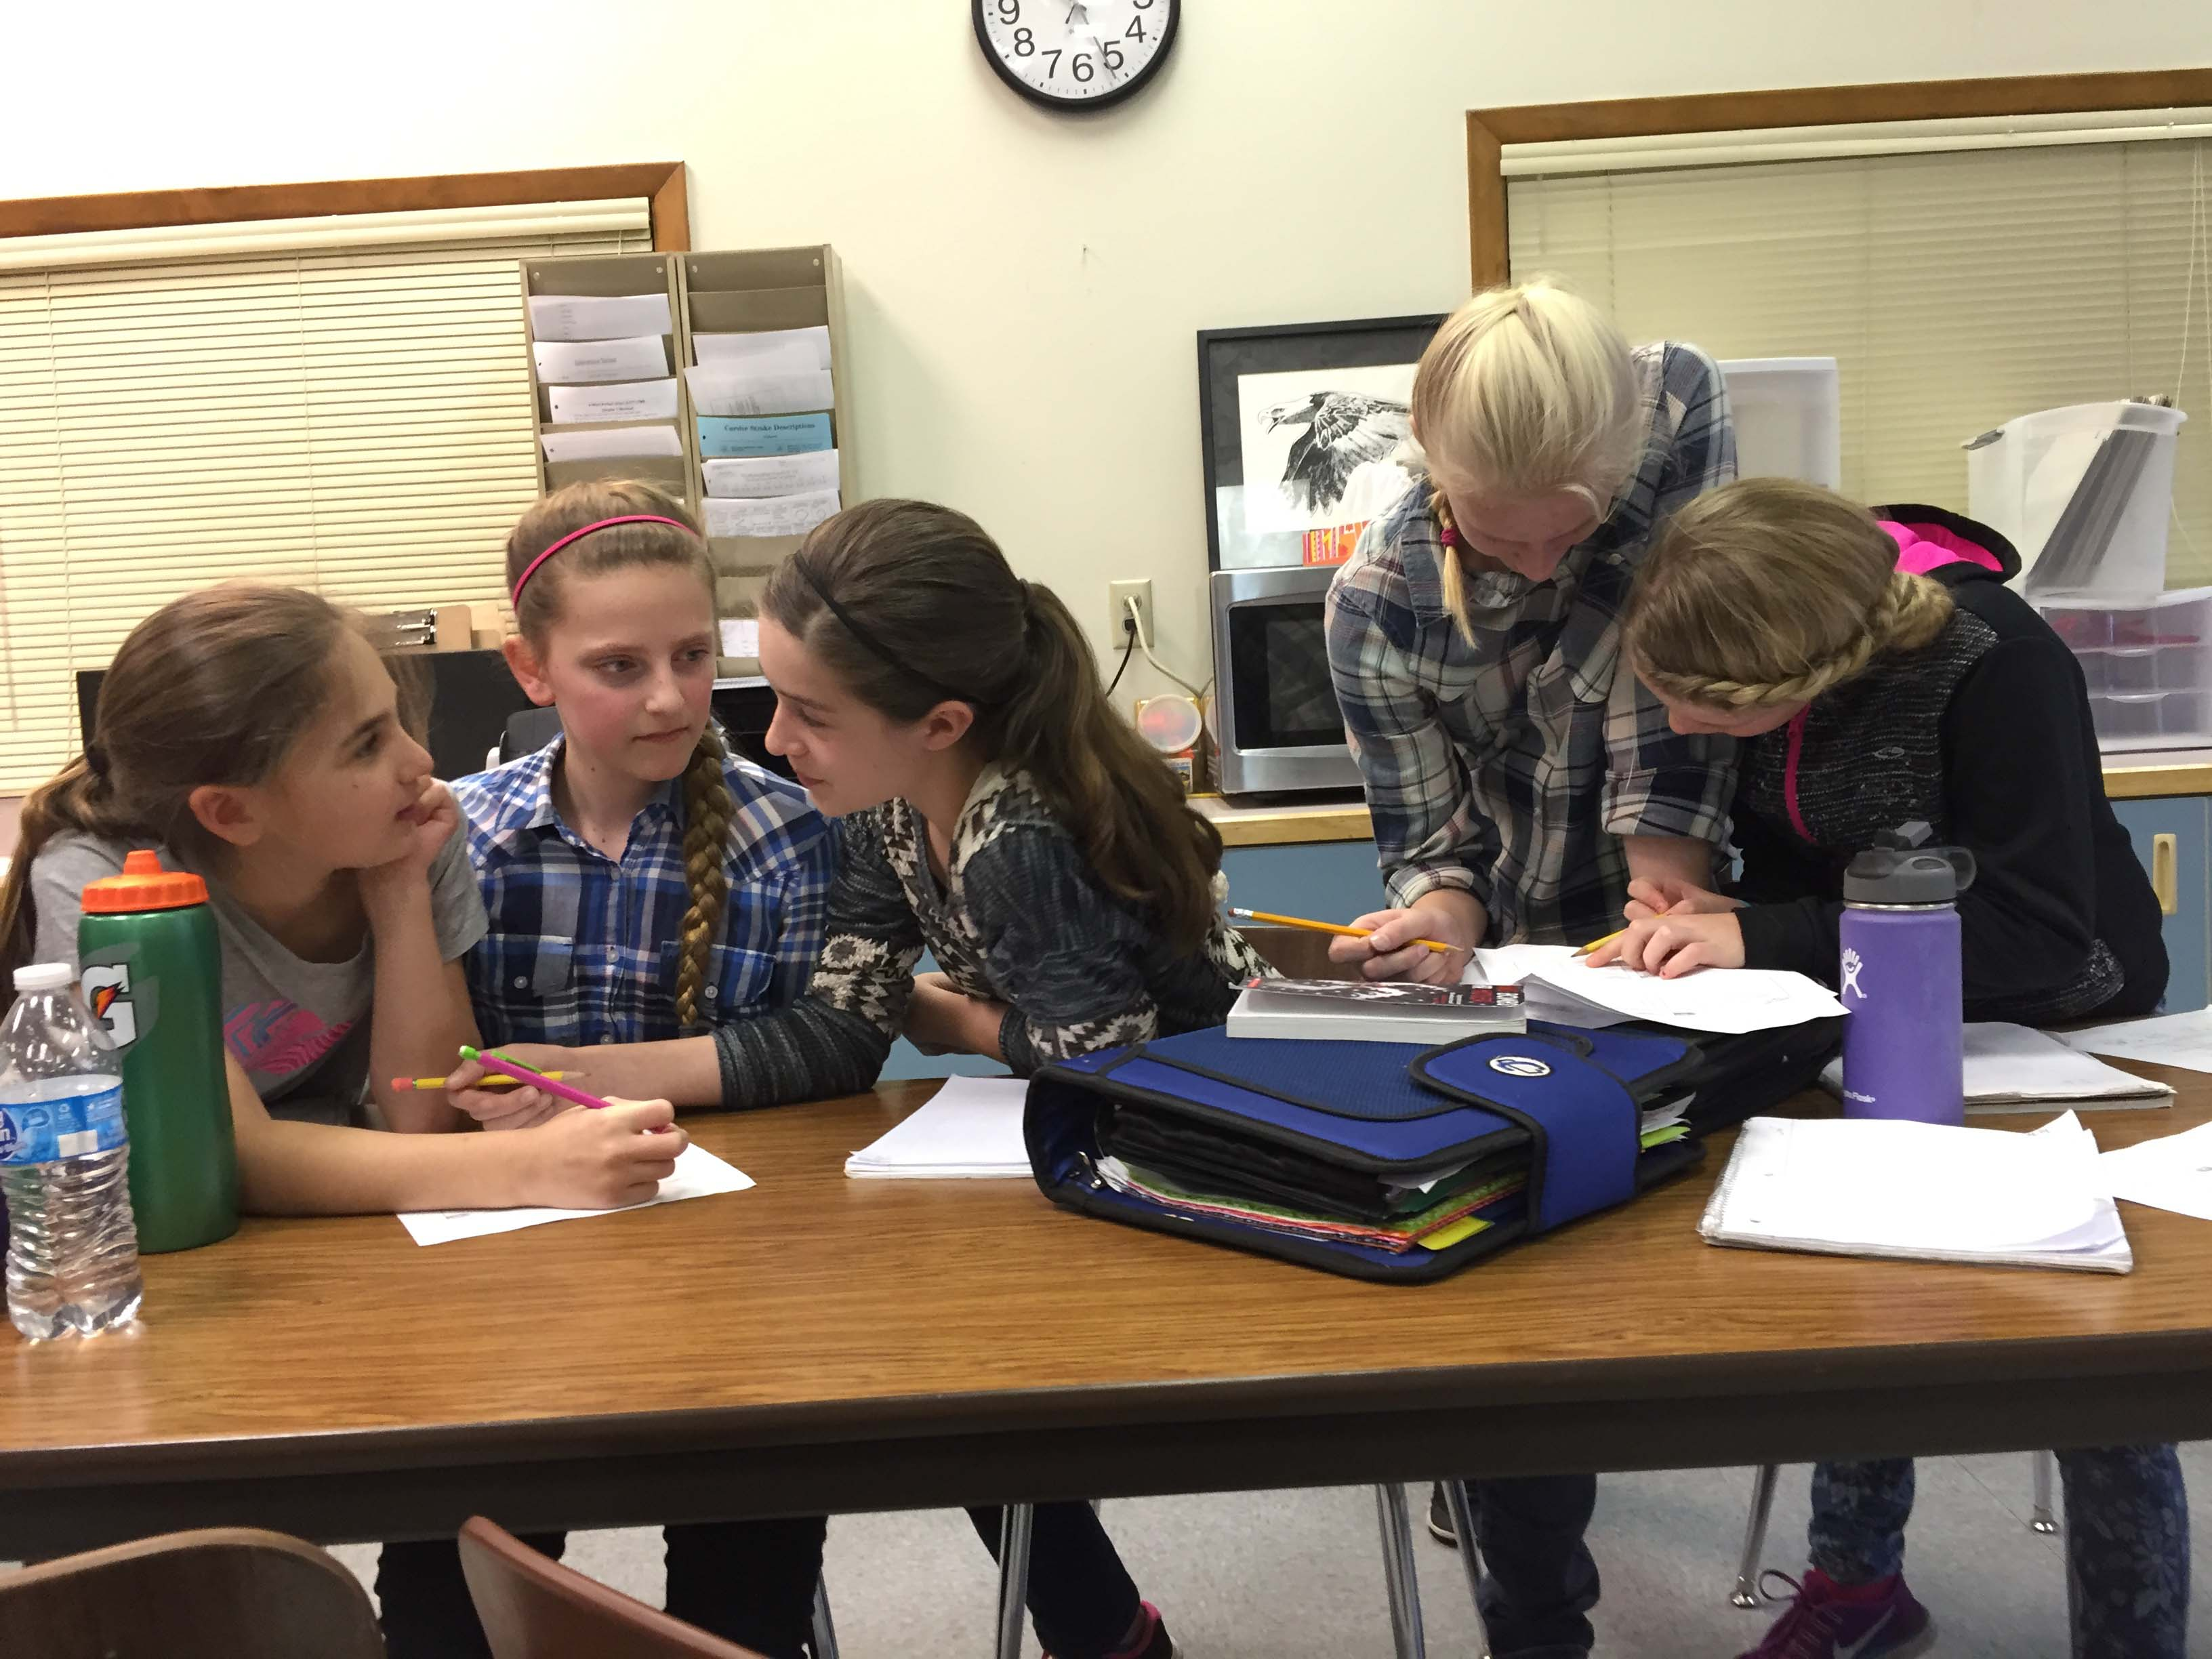 Victor Point School 6th graders at work together to understand math concepts